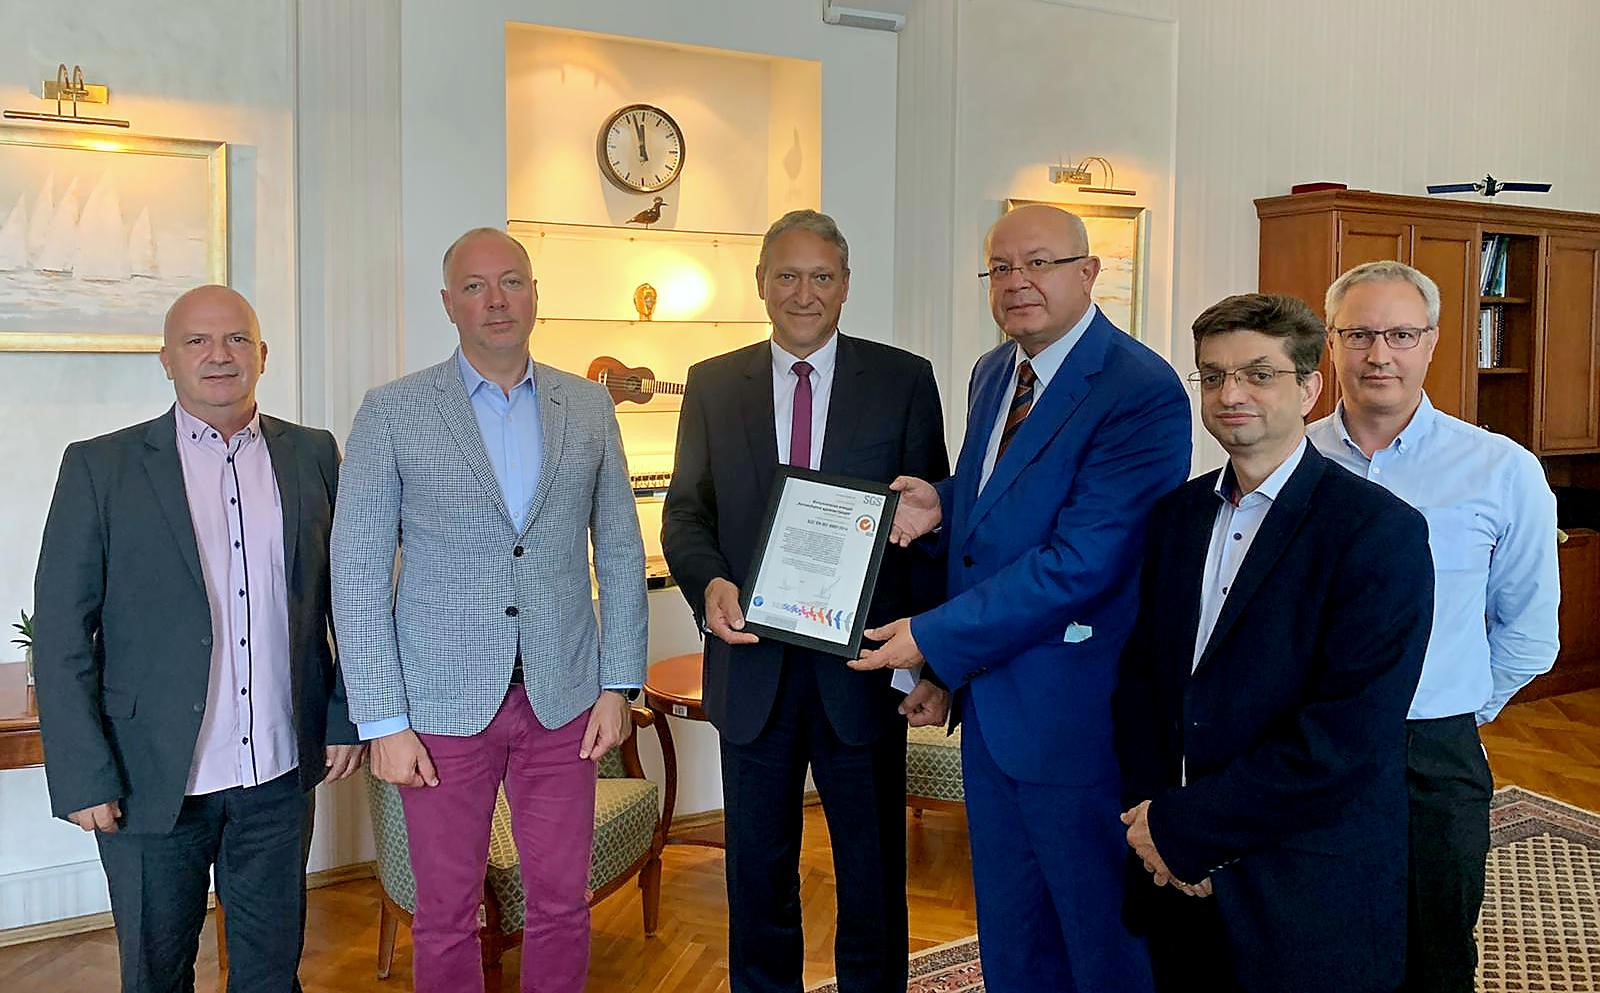 SGS Bulgaria certifies the Executive Agency 'Road traffic administration' according to ISO 39001 - Road Safety Management System